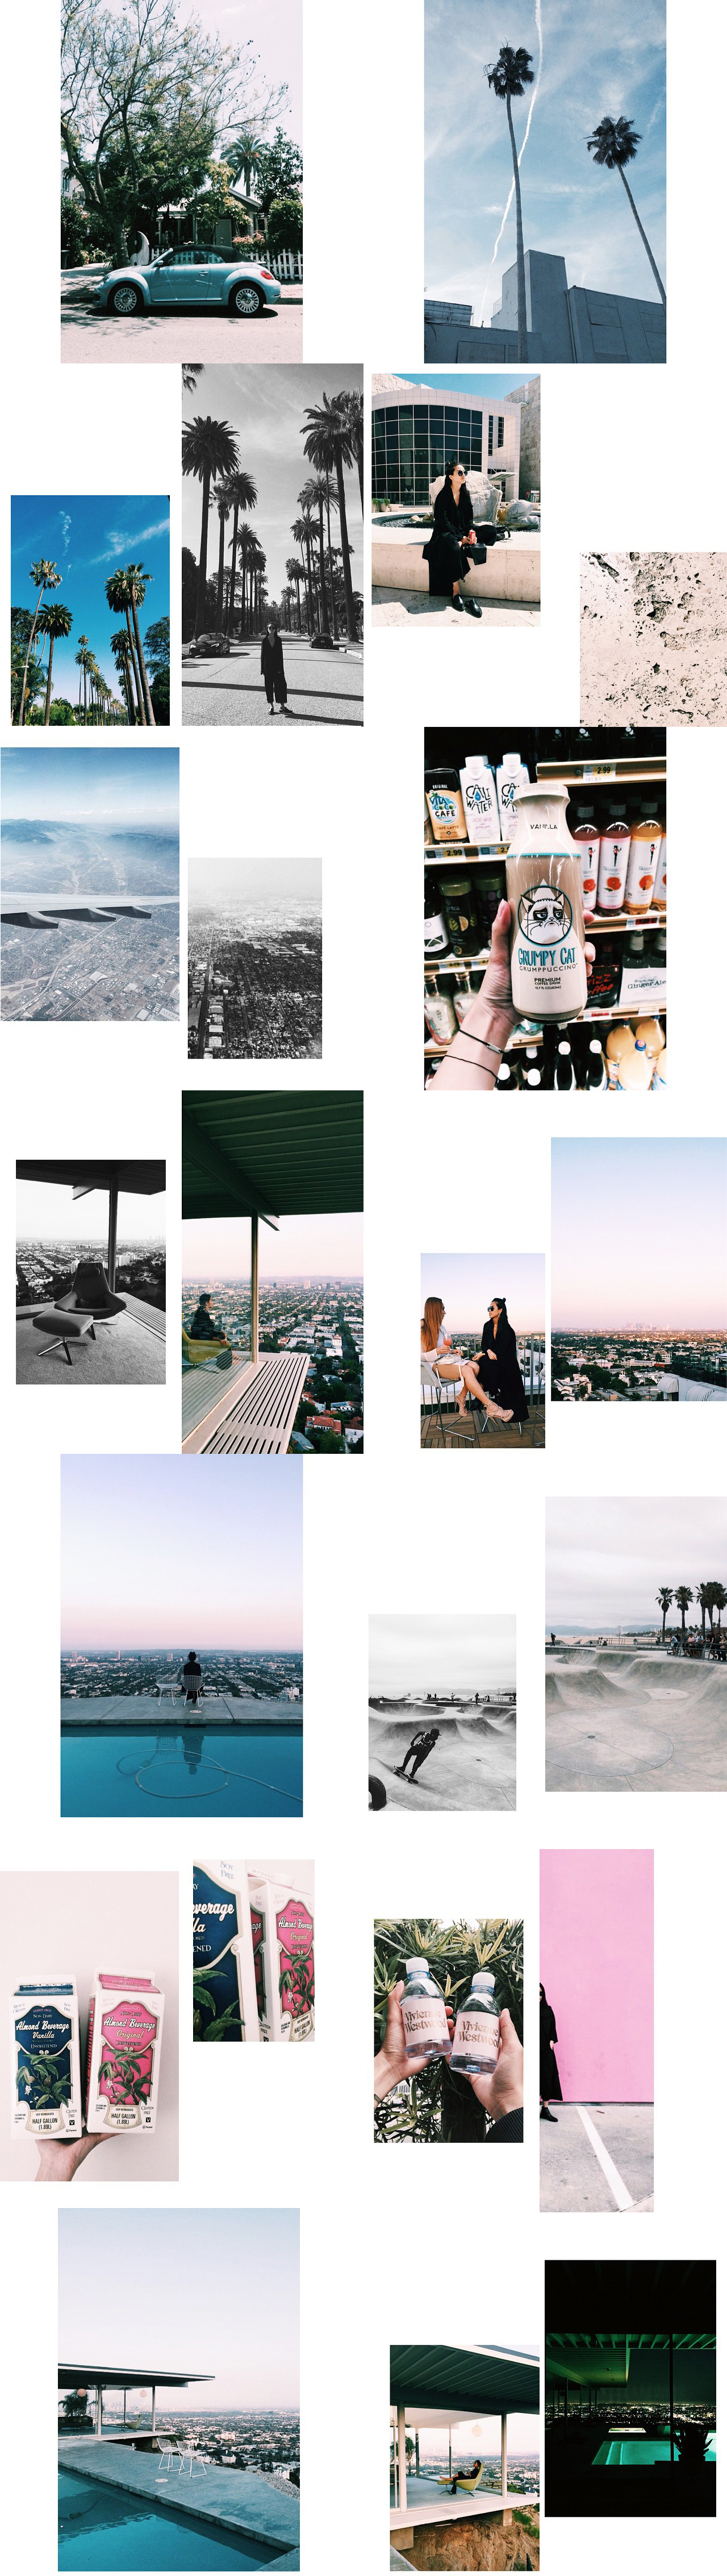 I heart Alice Los Angeles Travel Diary on Instagram